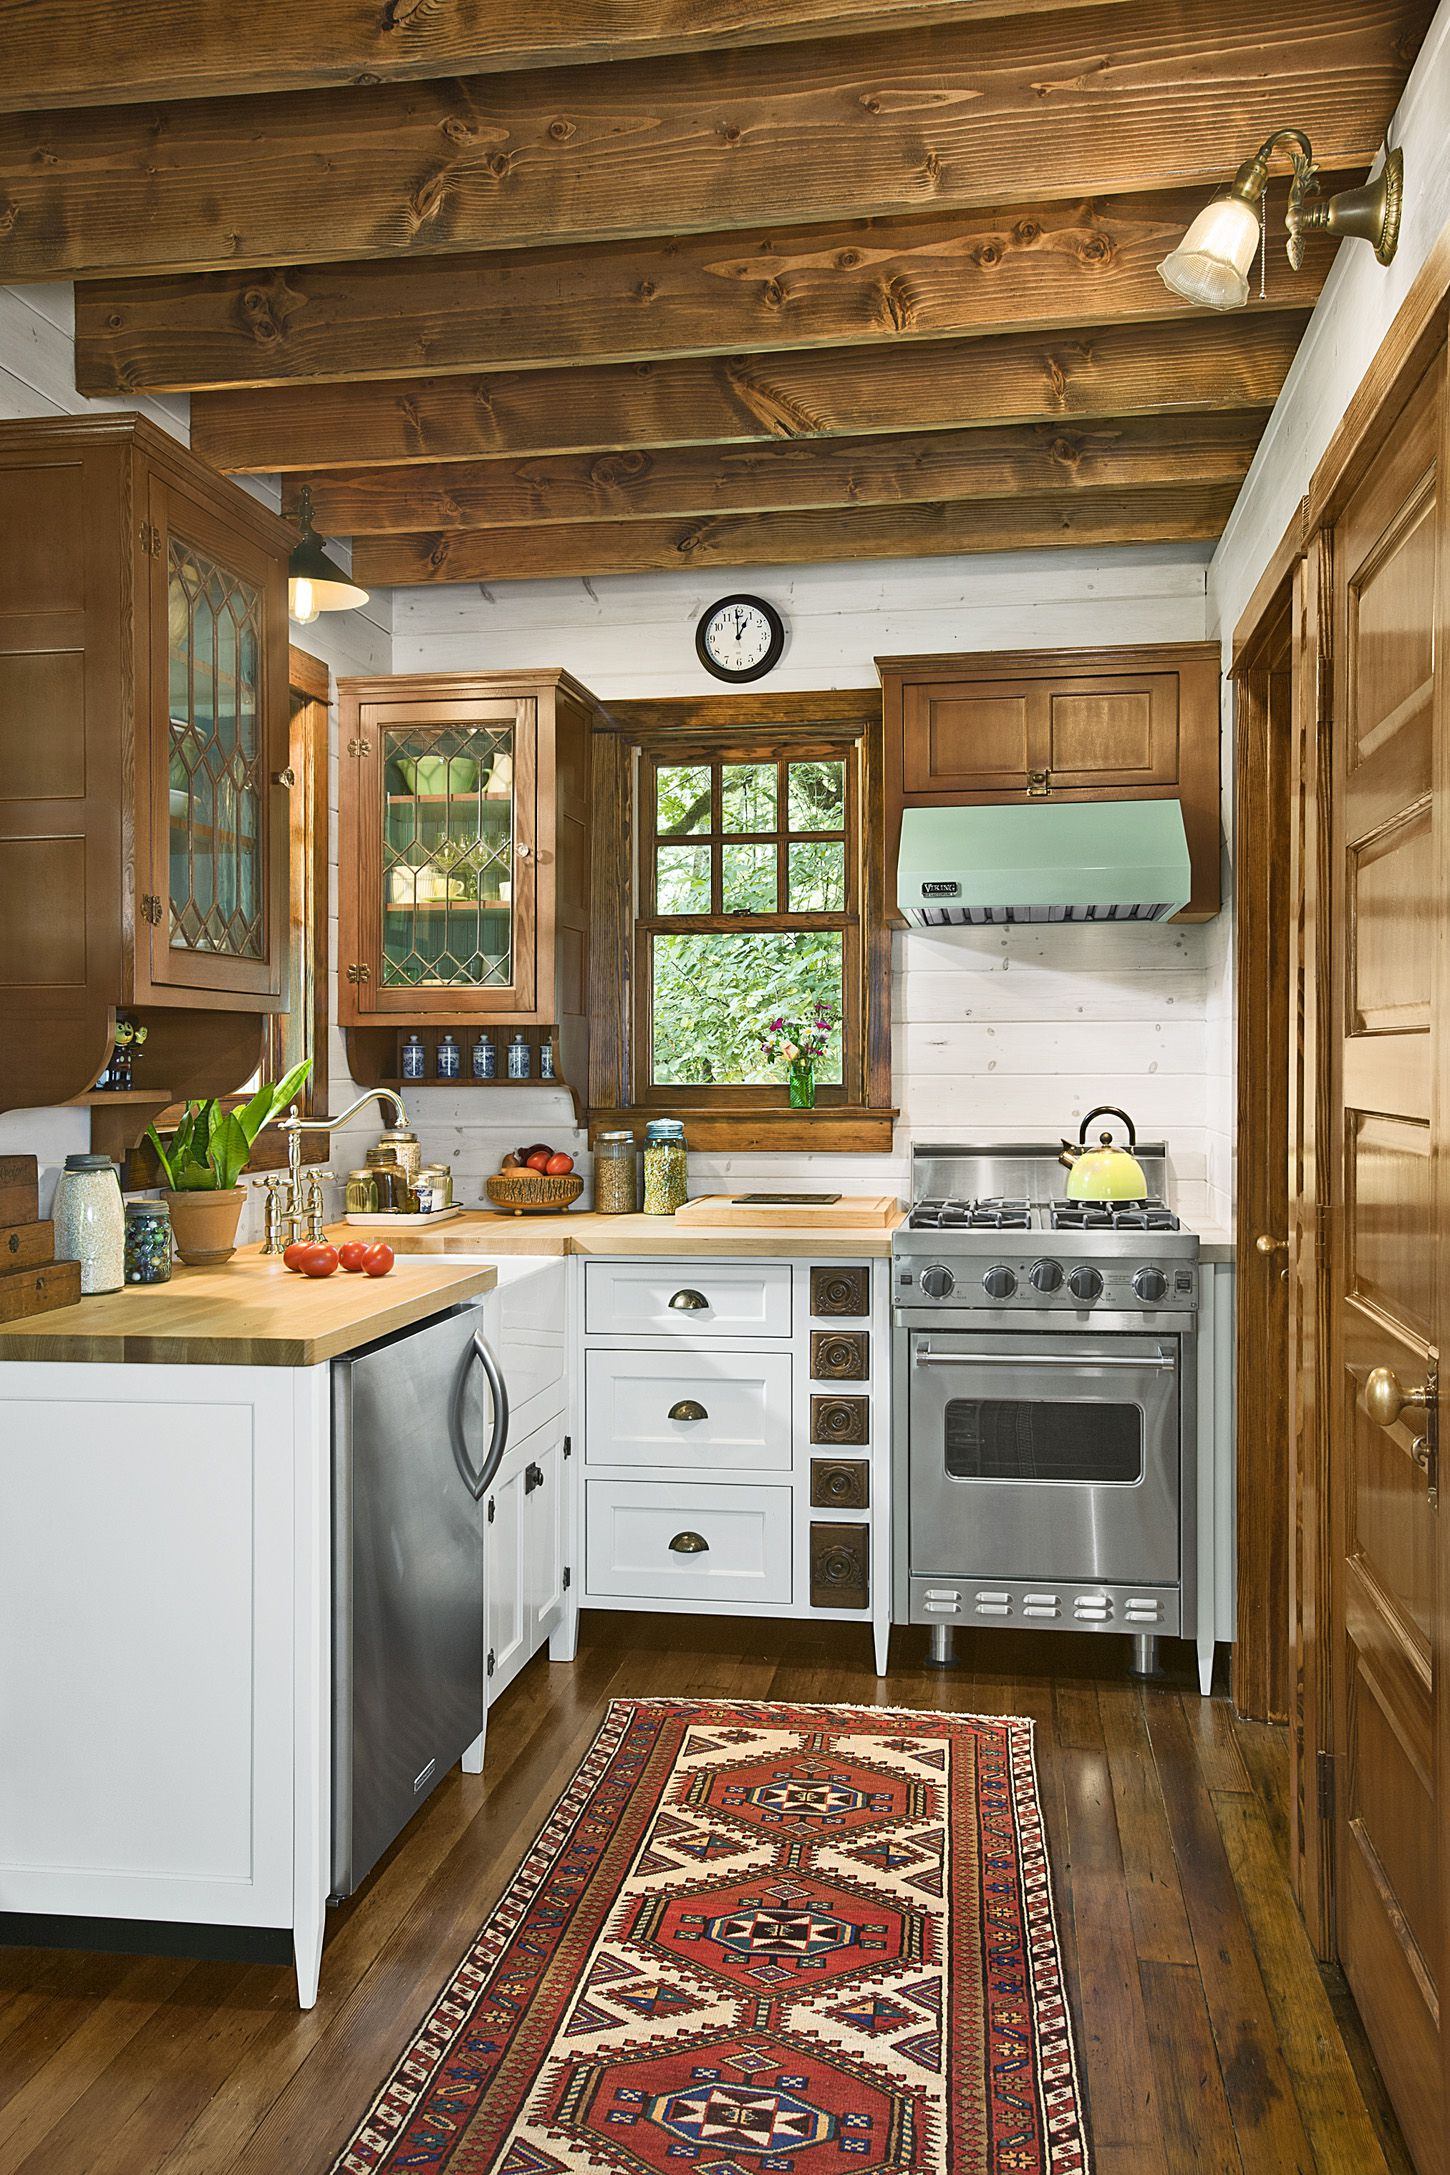 If you have a tiny kitchen, this is a great idea for a making the most out of it with this country farmhouse design.